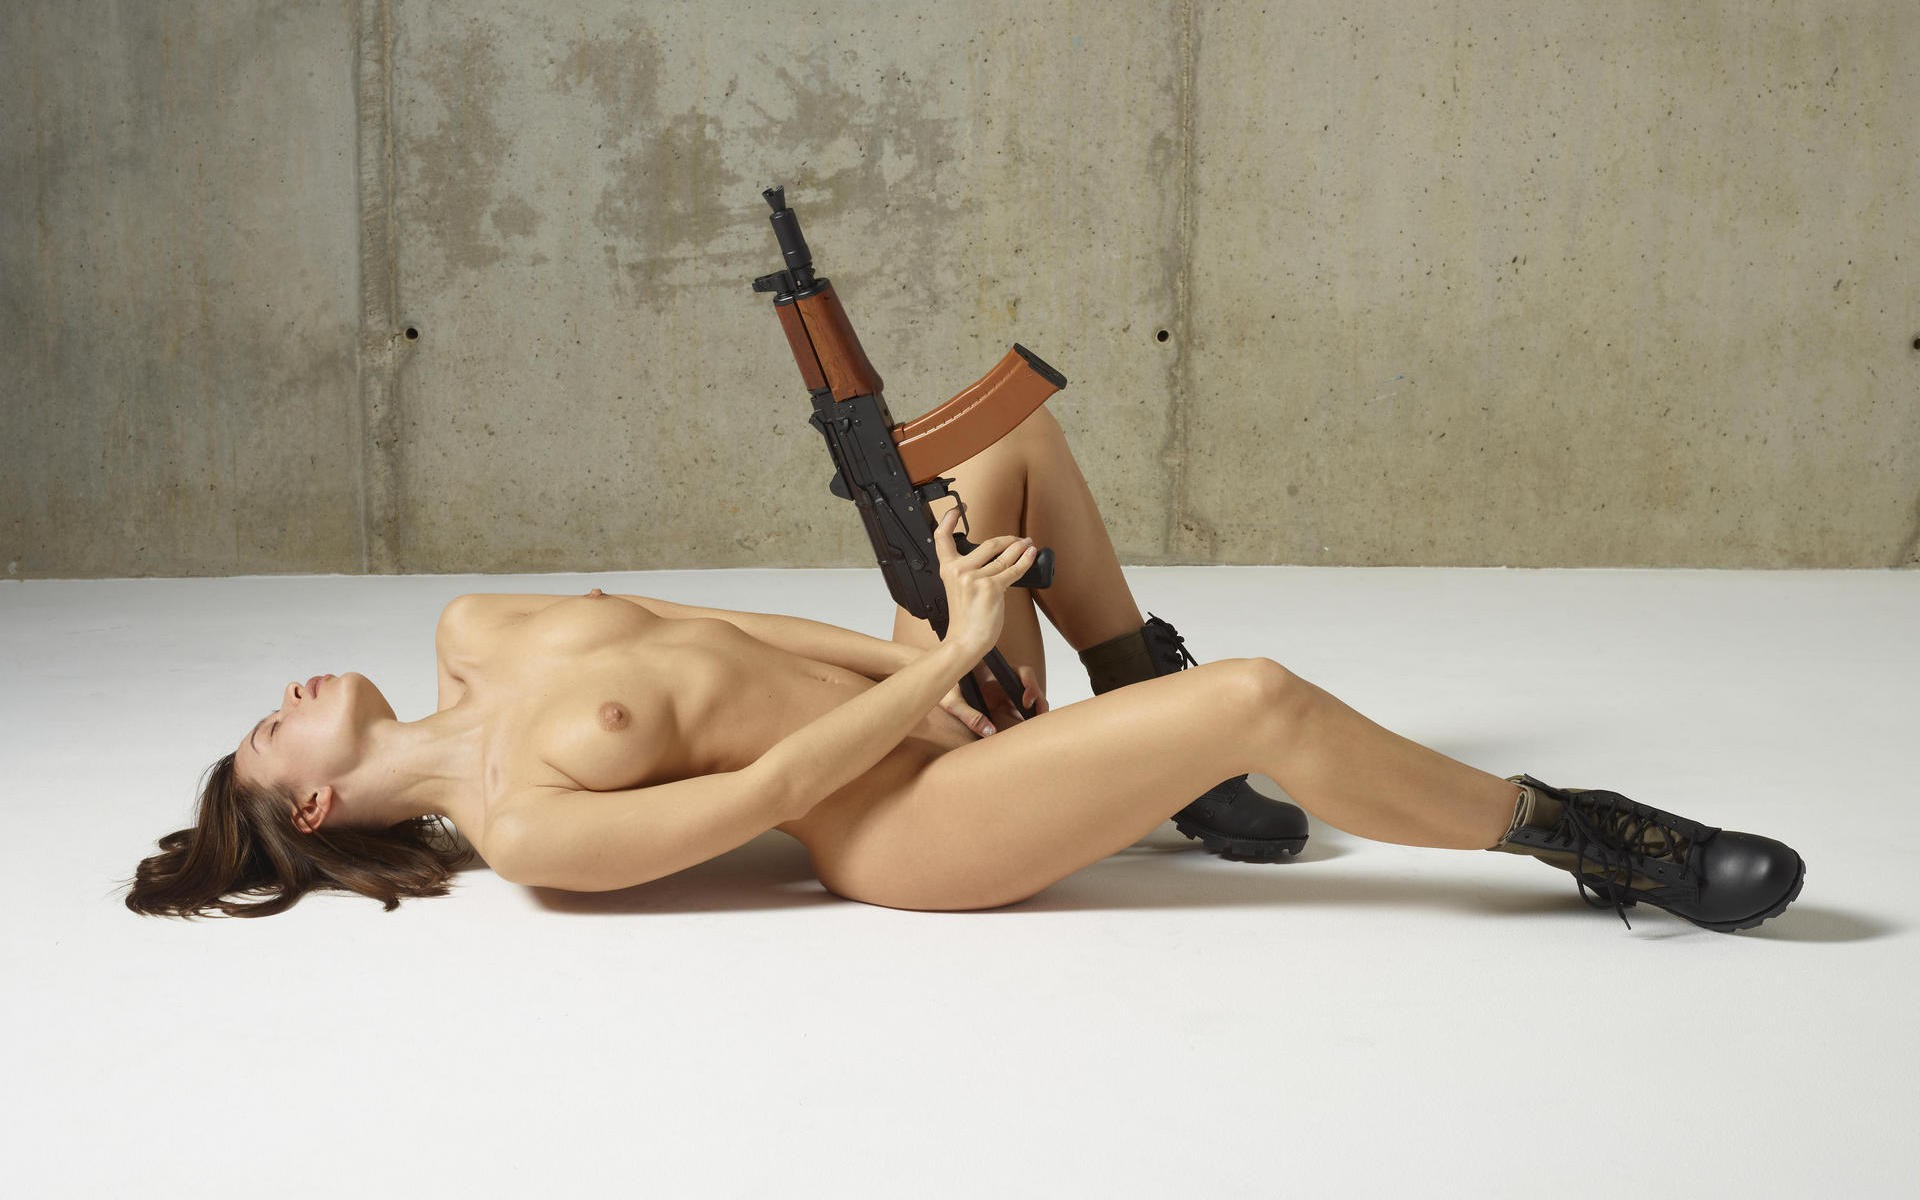 Russian solo girl poses naked with guns and knives in a wine colored beret